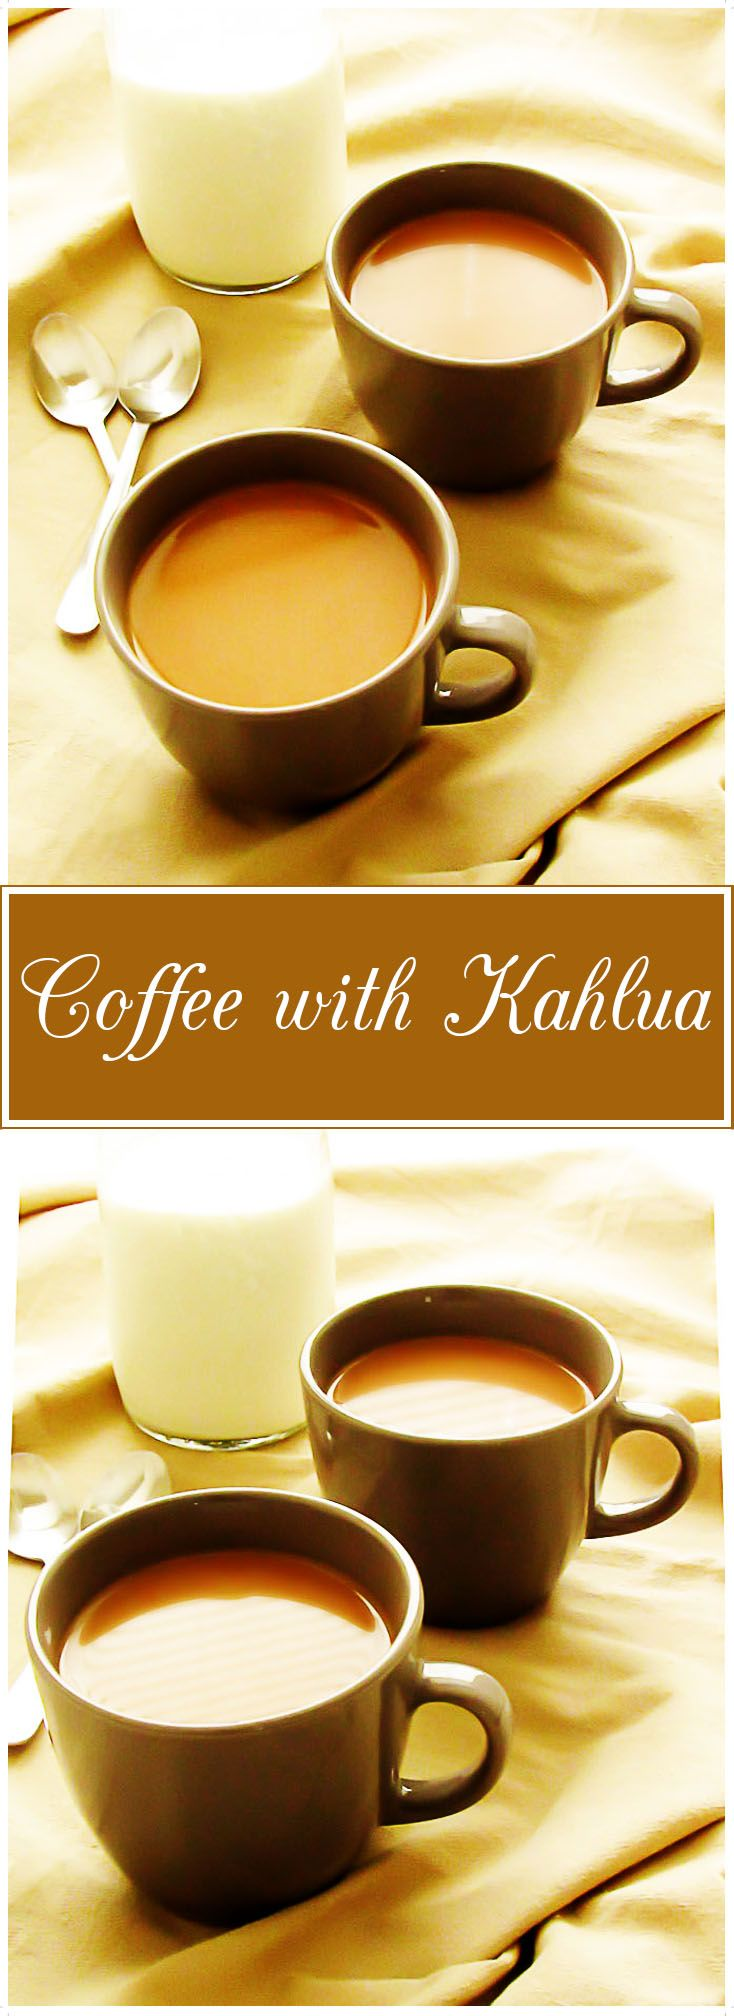 Coffee with Kahlua is warm and creamy with a hint of coffee liqueur. It's the perfect drink to enjoy on a chilly day wrapped up in your favorite blanket. via @berlyskitchen